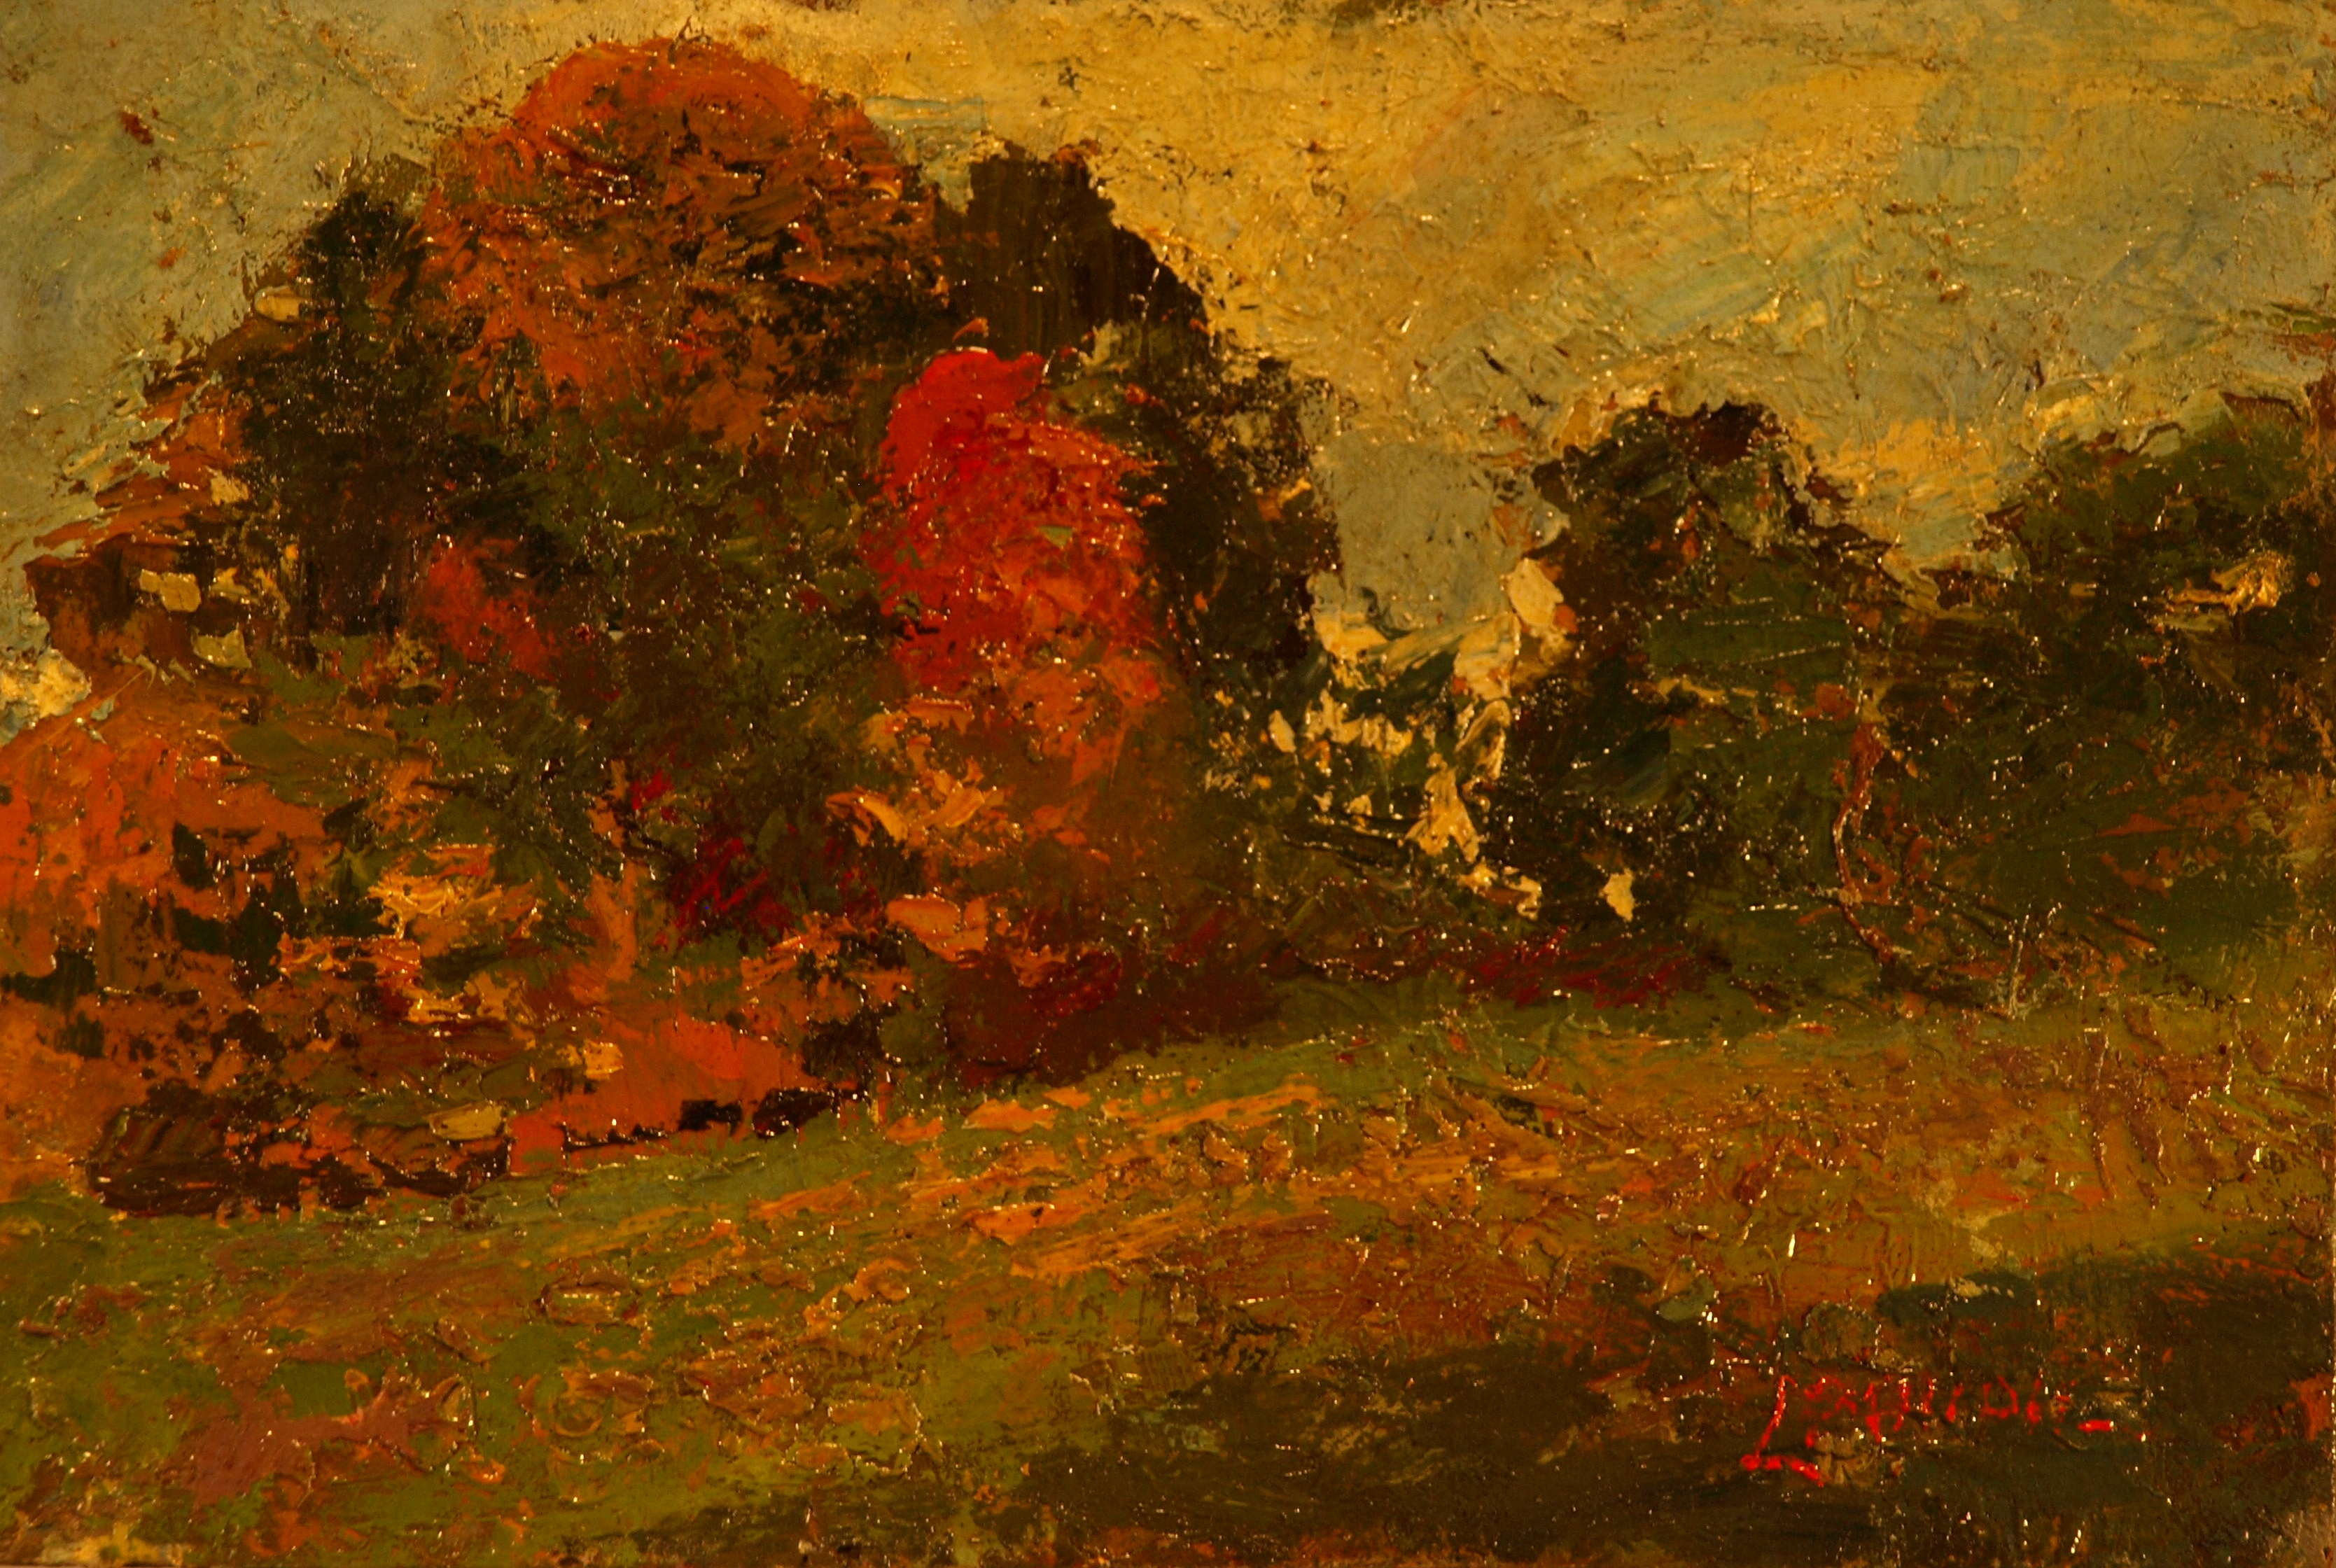 The Red Tree, Oil on Panel, 8 x 12 Inches, by Bernard Lennon, $300